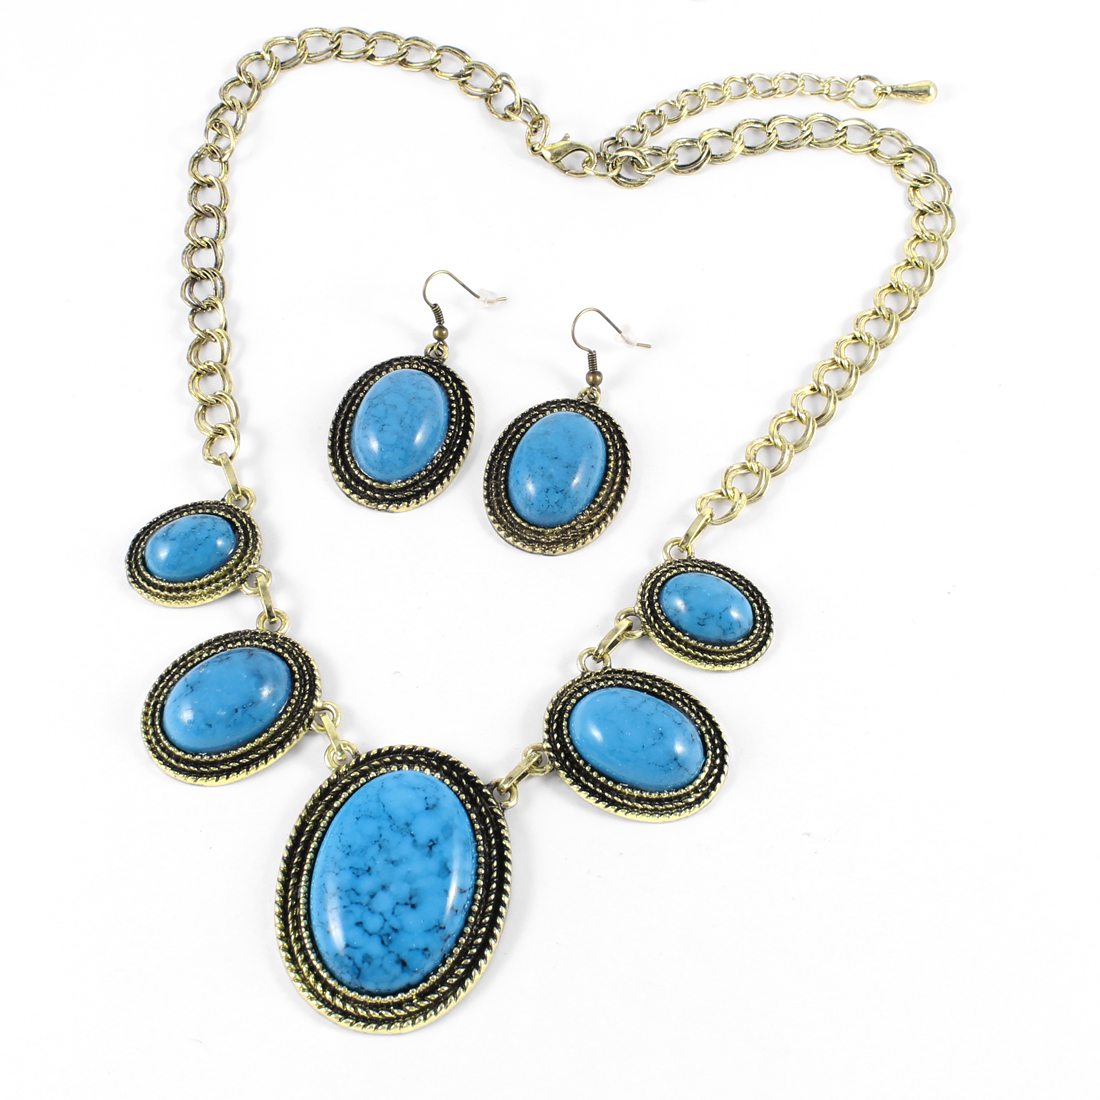 Women Dodger Blue Plastic Beads Pendant Necklace Neck Adornment w Hook Earrings